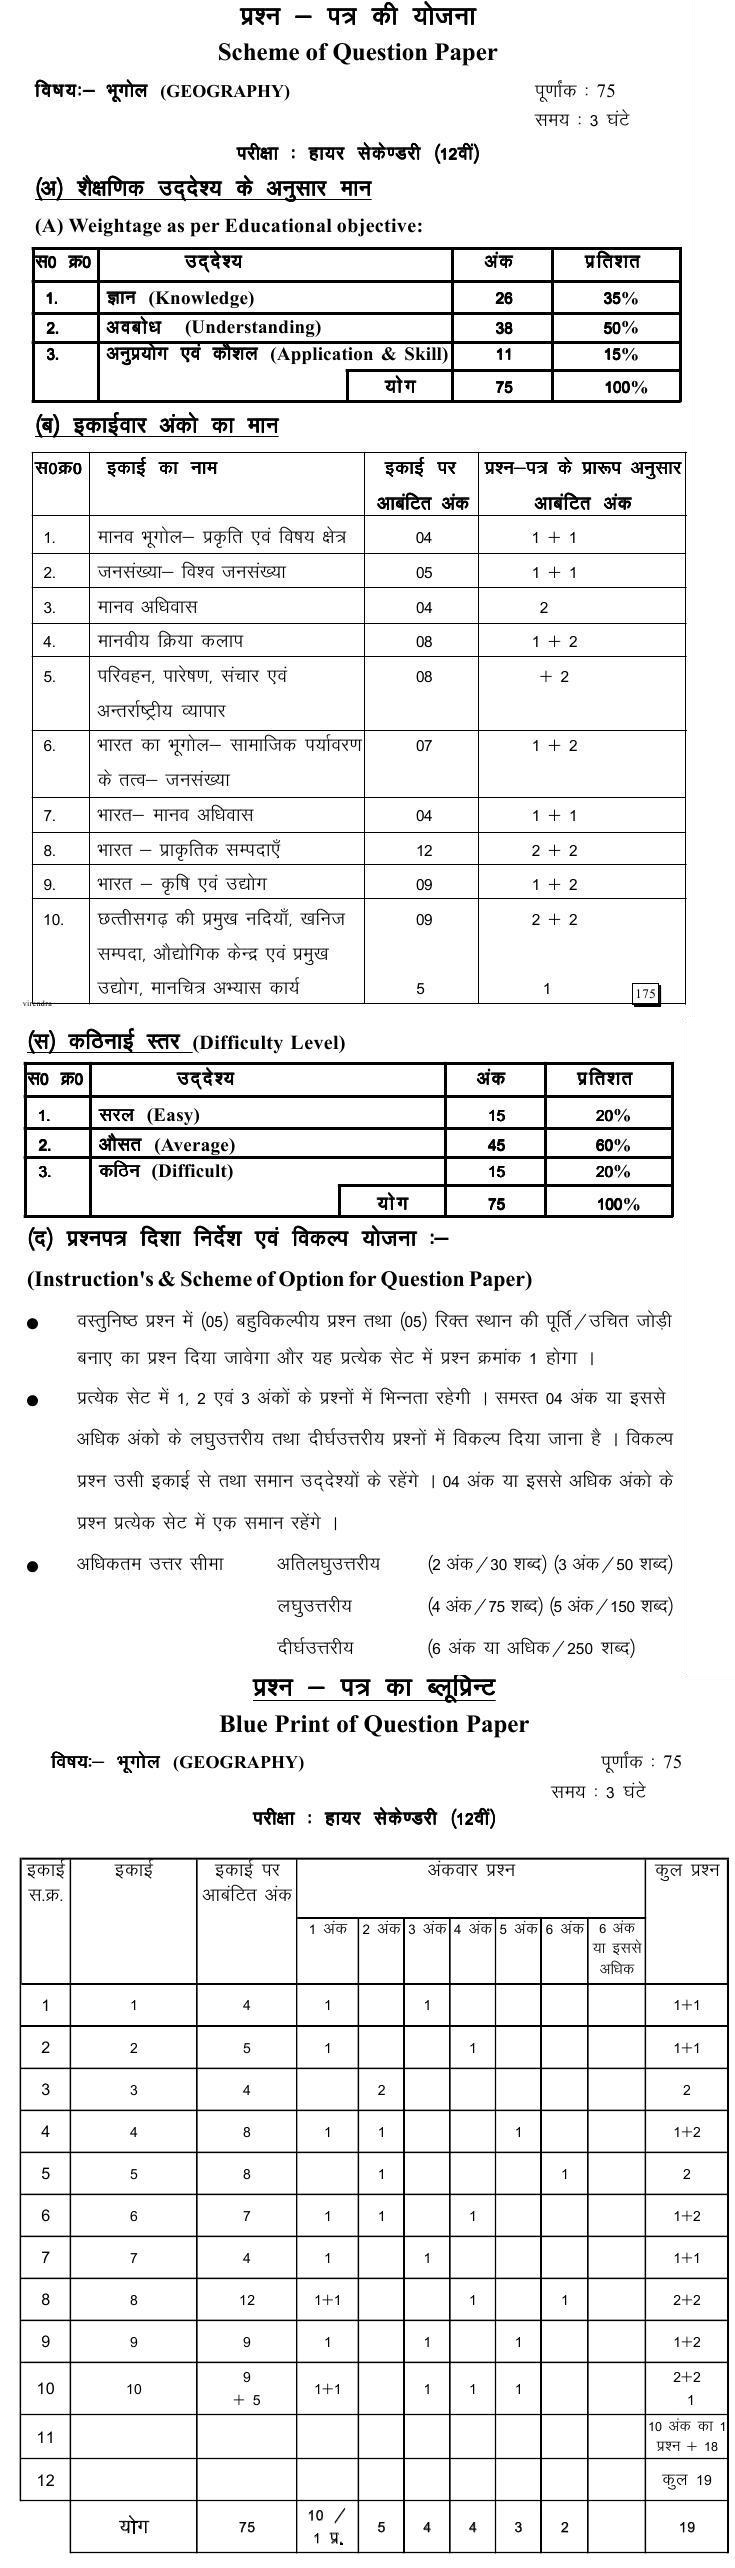 Chattisgarh Board Class 12 Scheme and Blue Print of Geography